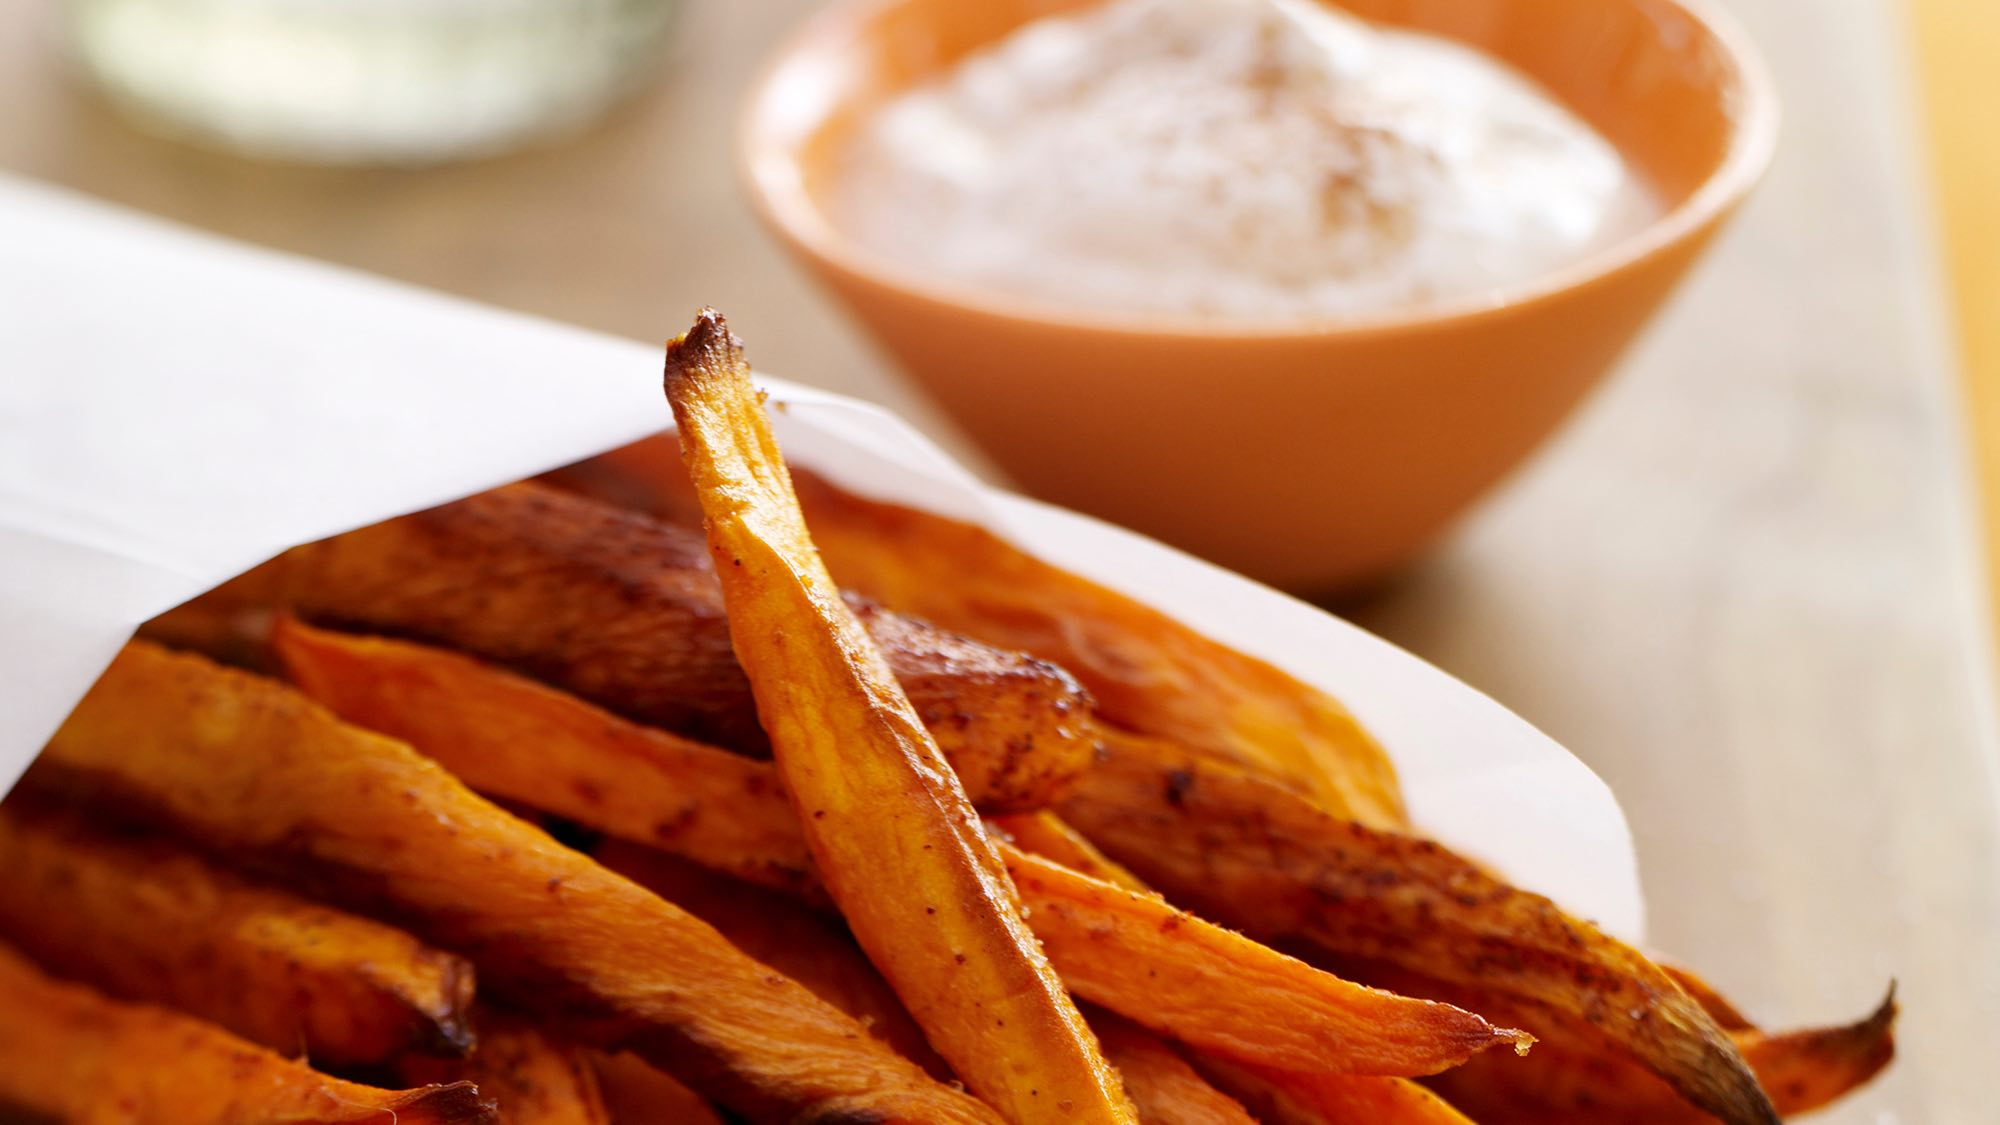 McCormick Baked Sweet Potato Fries with Honey Spice Dip